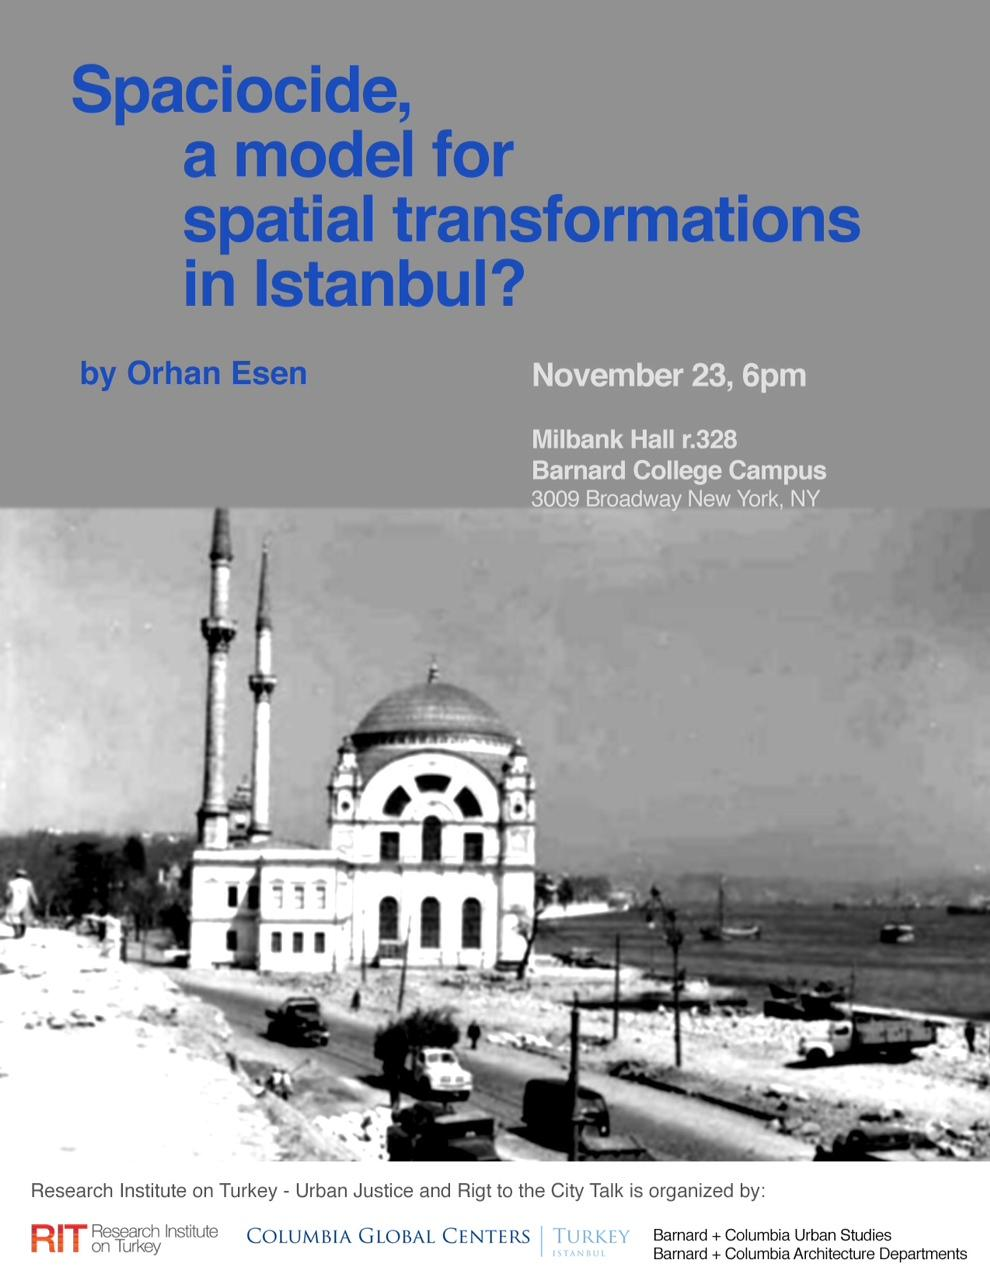 Orhan Esen: Spaciocide, a Model for Spatial Transformations in Istanbul?